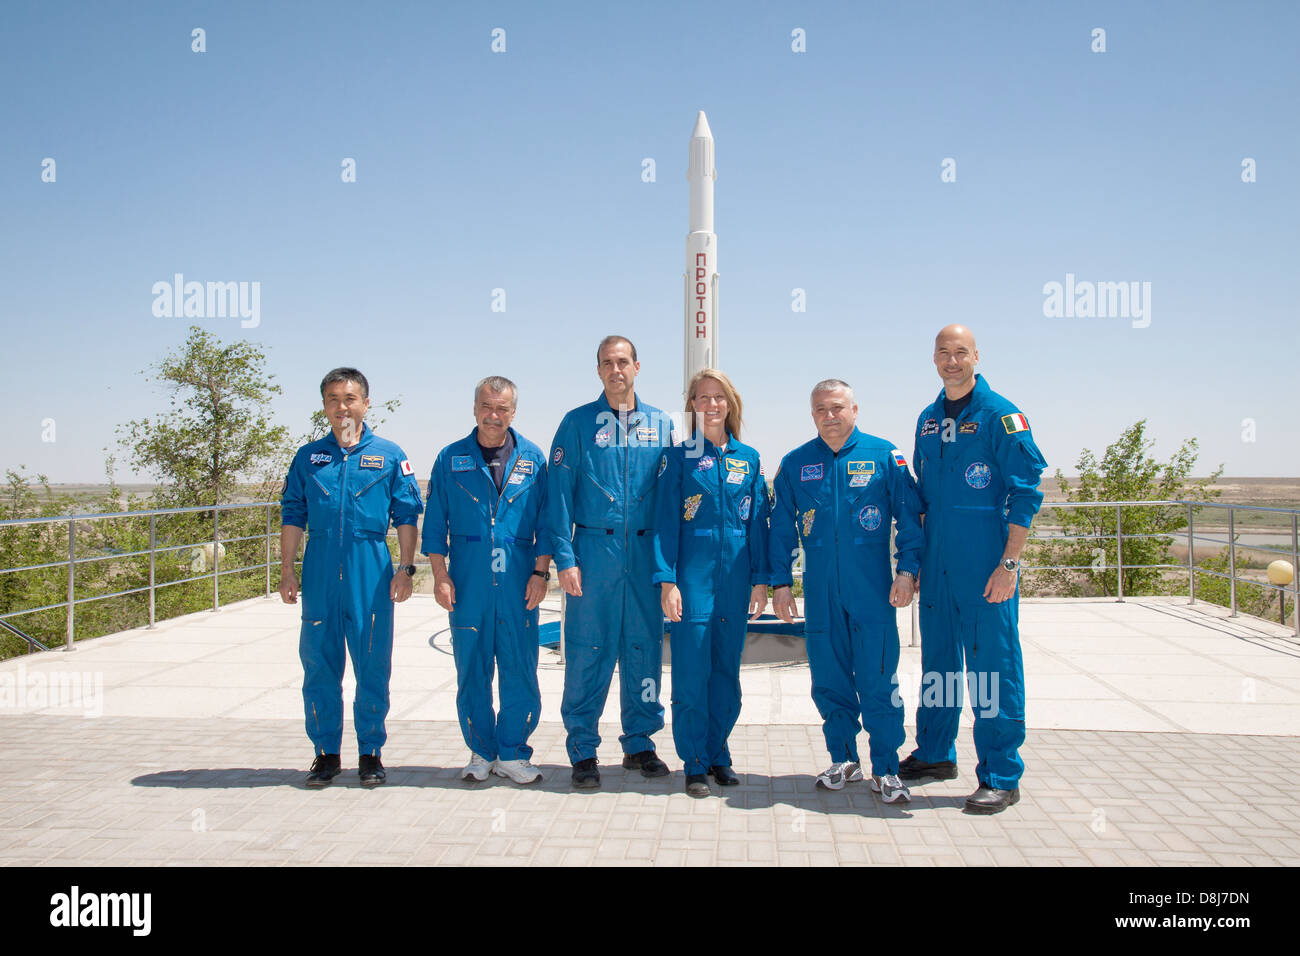 Expedition 36/37 backup and prime crew members pose for pictures in front of a Proton rocket statue May 22, 2013 - Stock Image